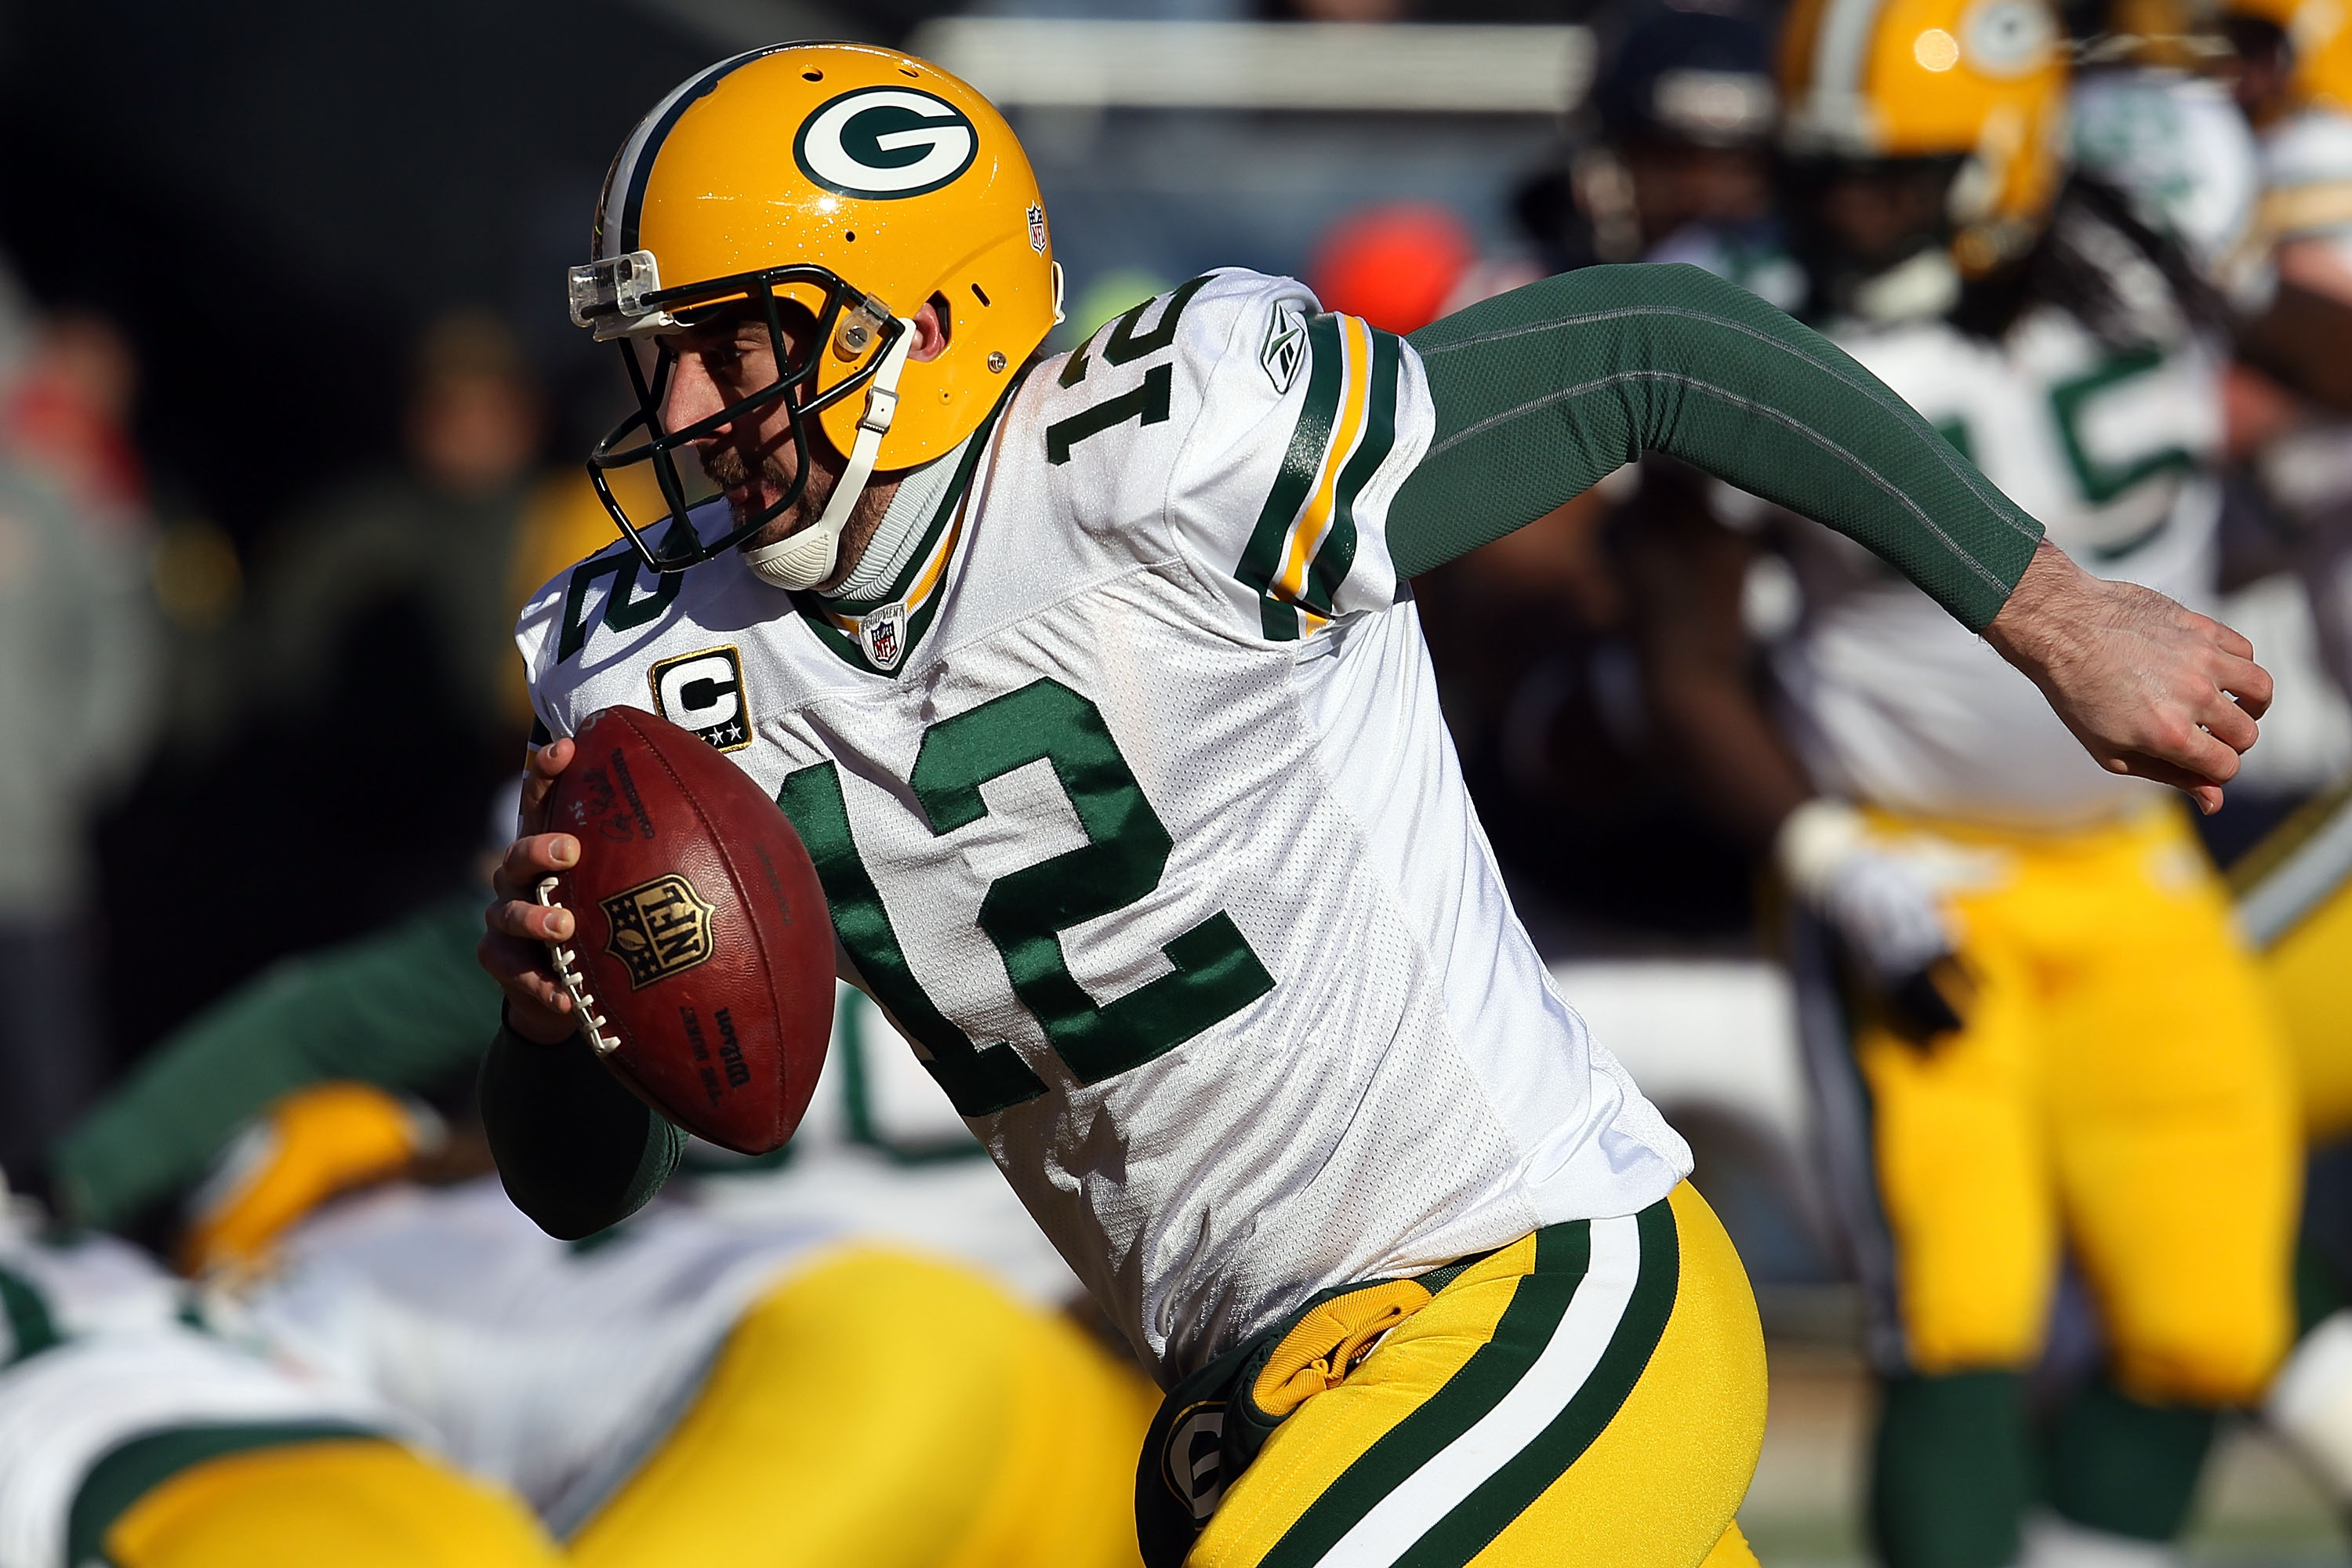 CHICAGO, IL - JANUARY 23:  Quarterback Aaron Rodgers #12 of the Green Bay Packers runs the ball to the corner of the endzone for a one-yard touchdown run against Danieal Manning #38 of the Chicago Bears in the first quarter of the NFC Championship Game at